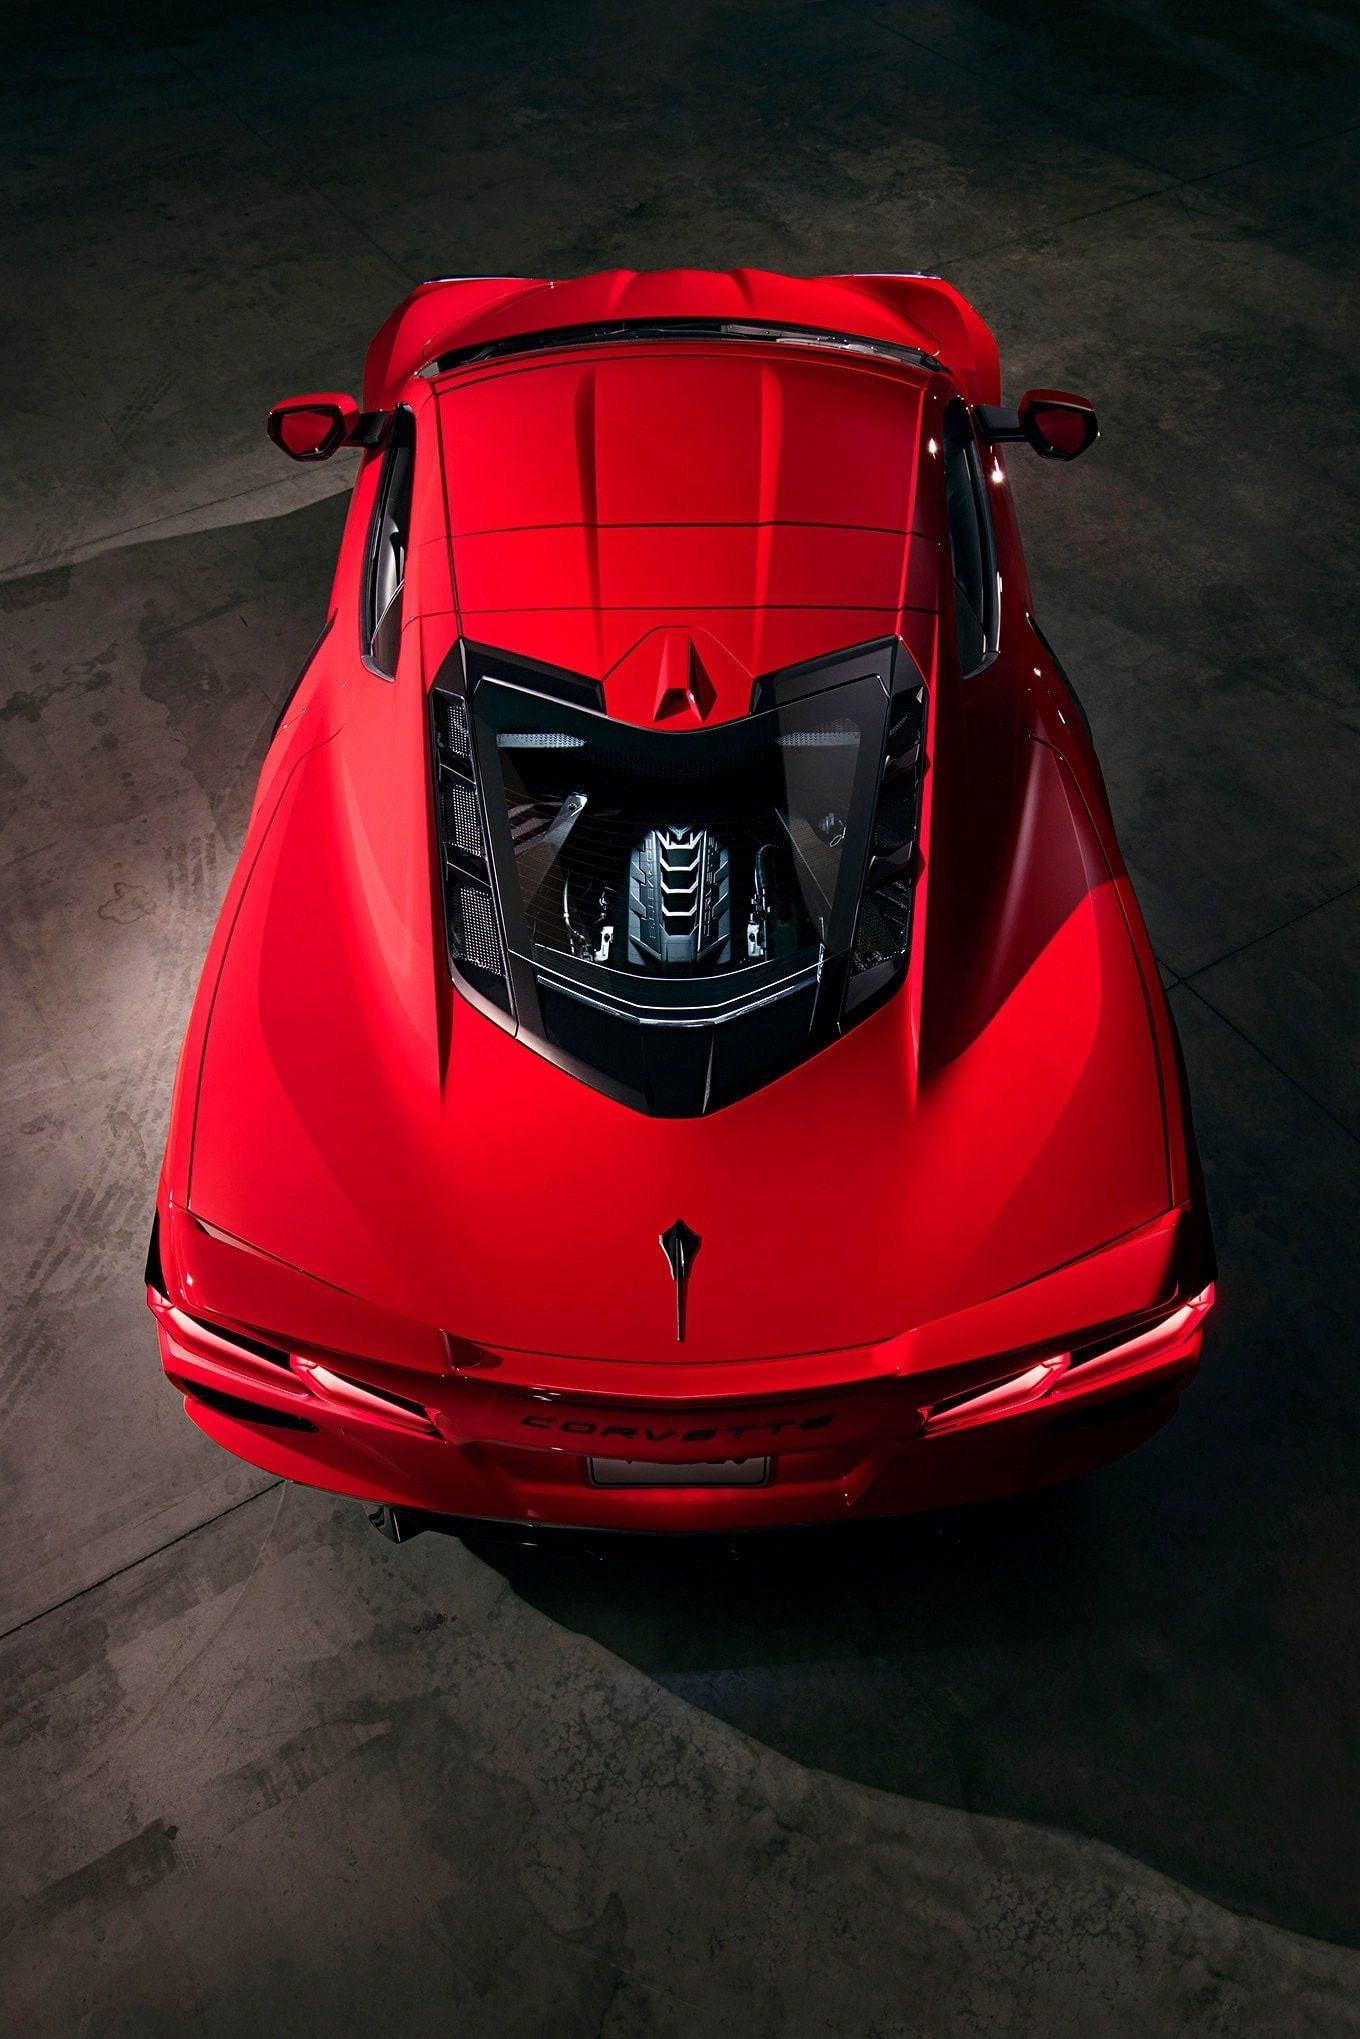 2020 Chevrolet C8 Corvette Stingray Corvette Stingray Chevrolet Corvette Chevrolet Corvette Stingray